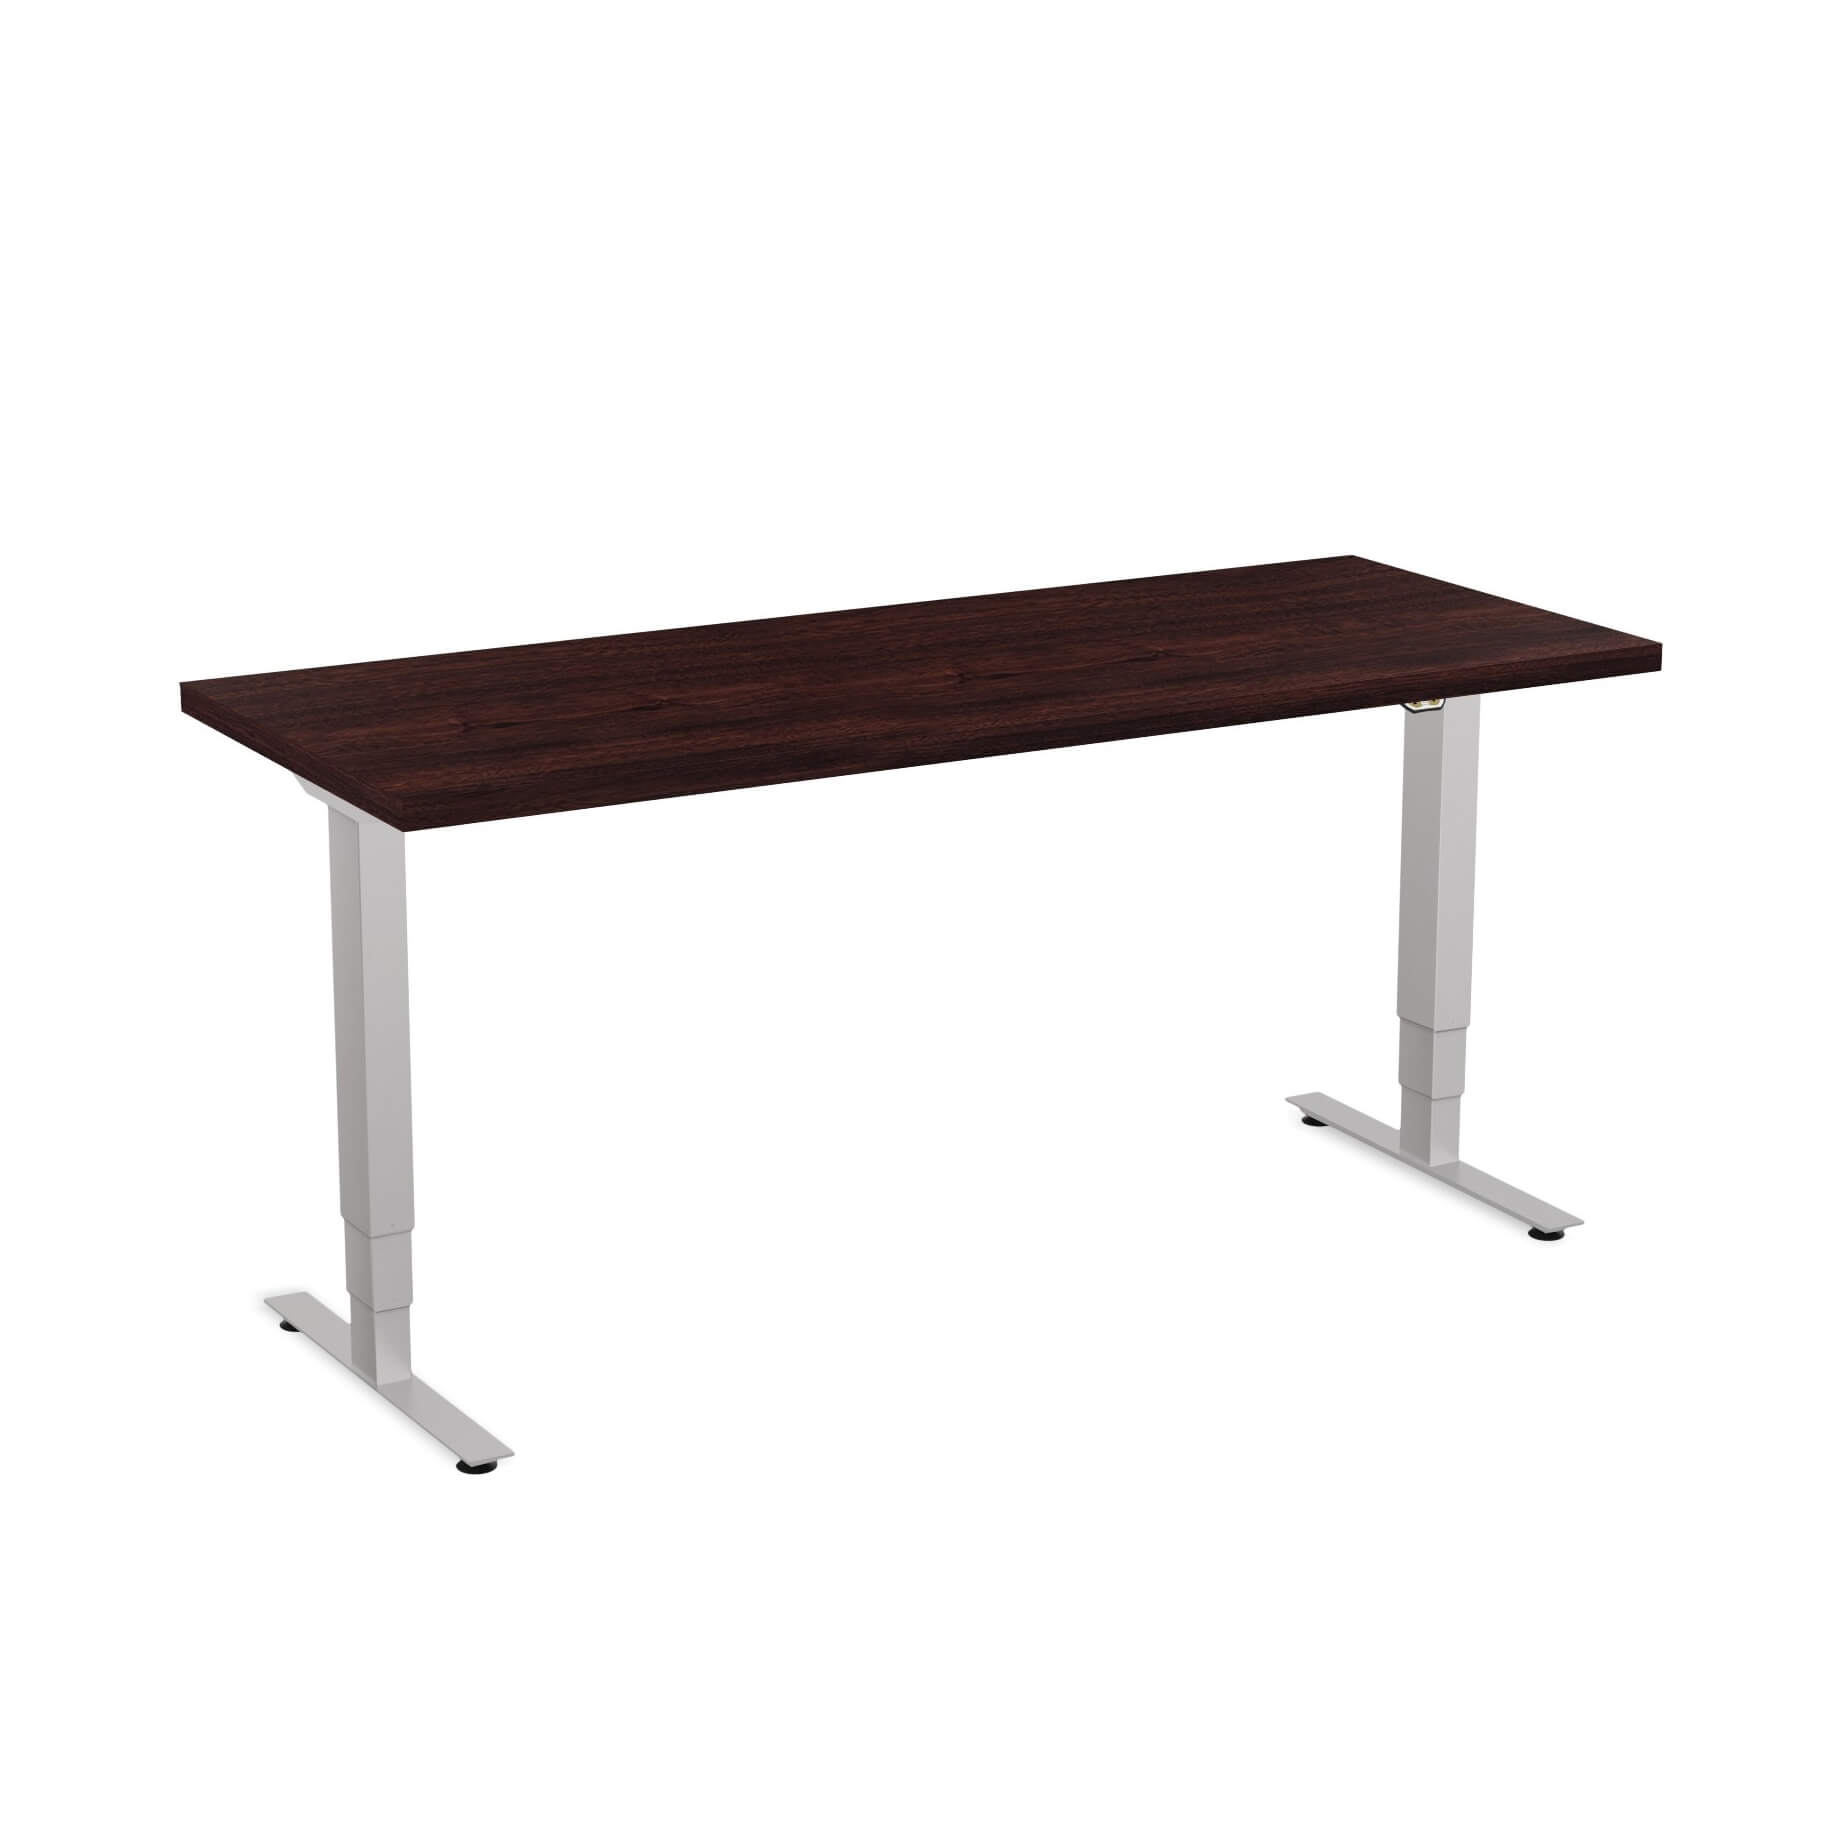 sit-stand-desk-height-adjustable-work-table.jpg